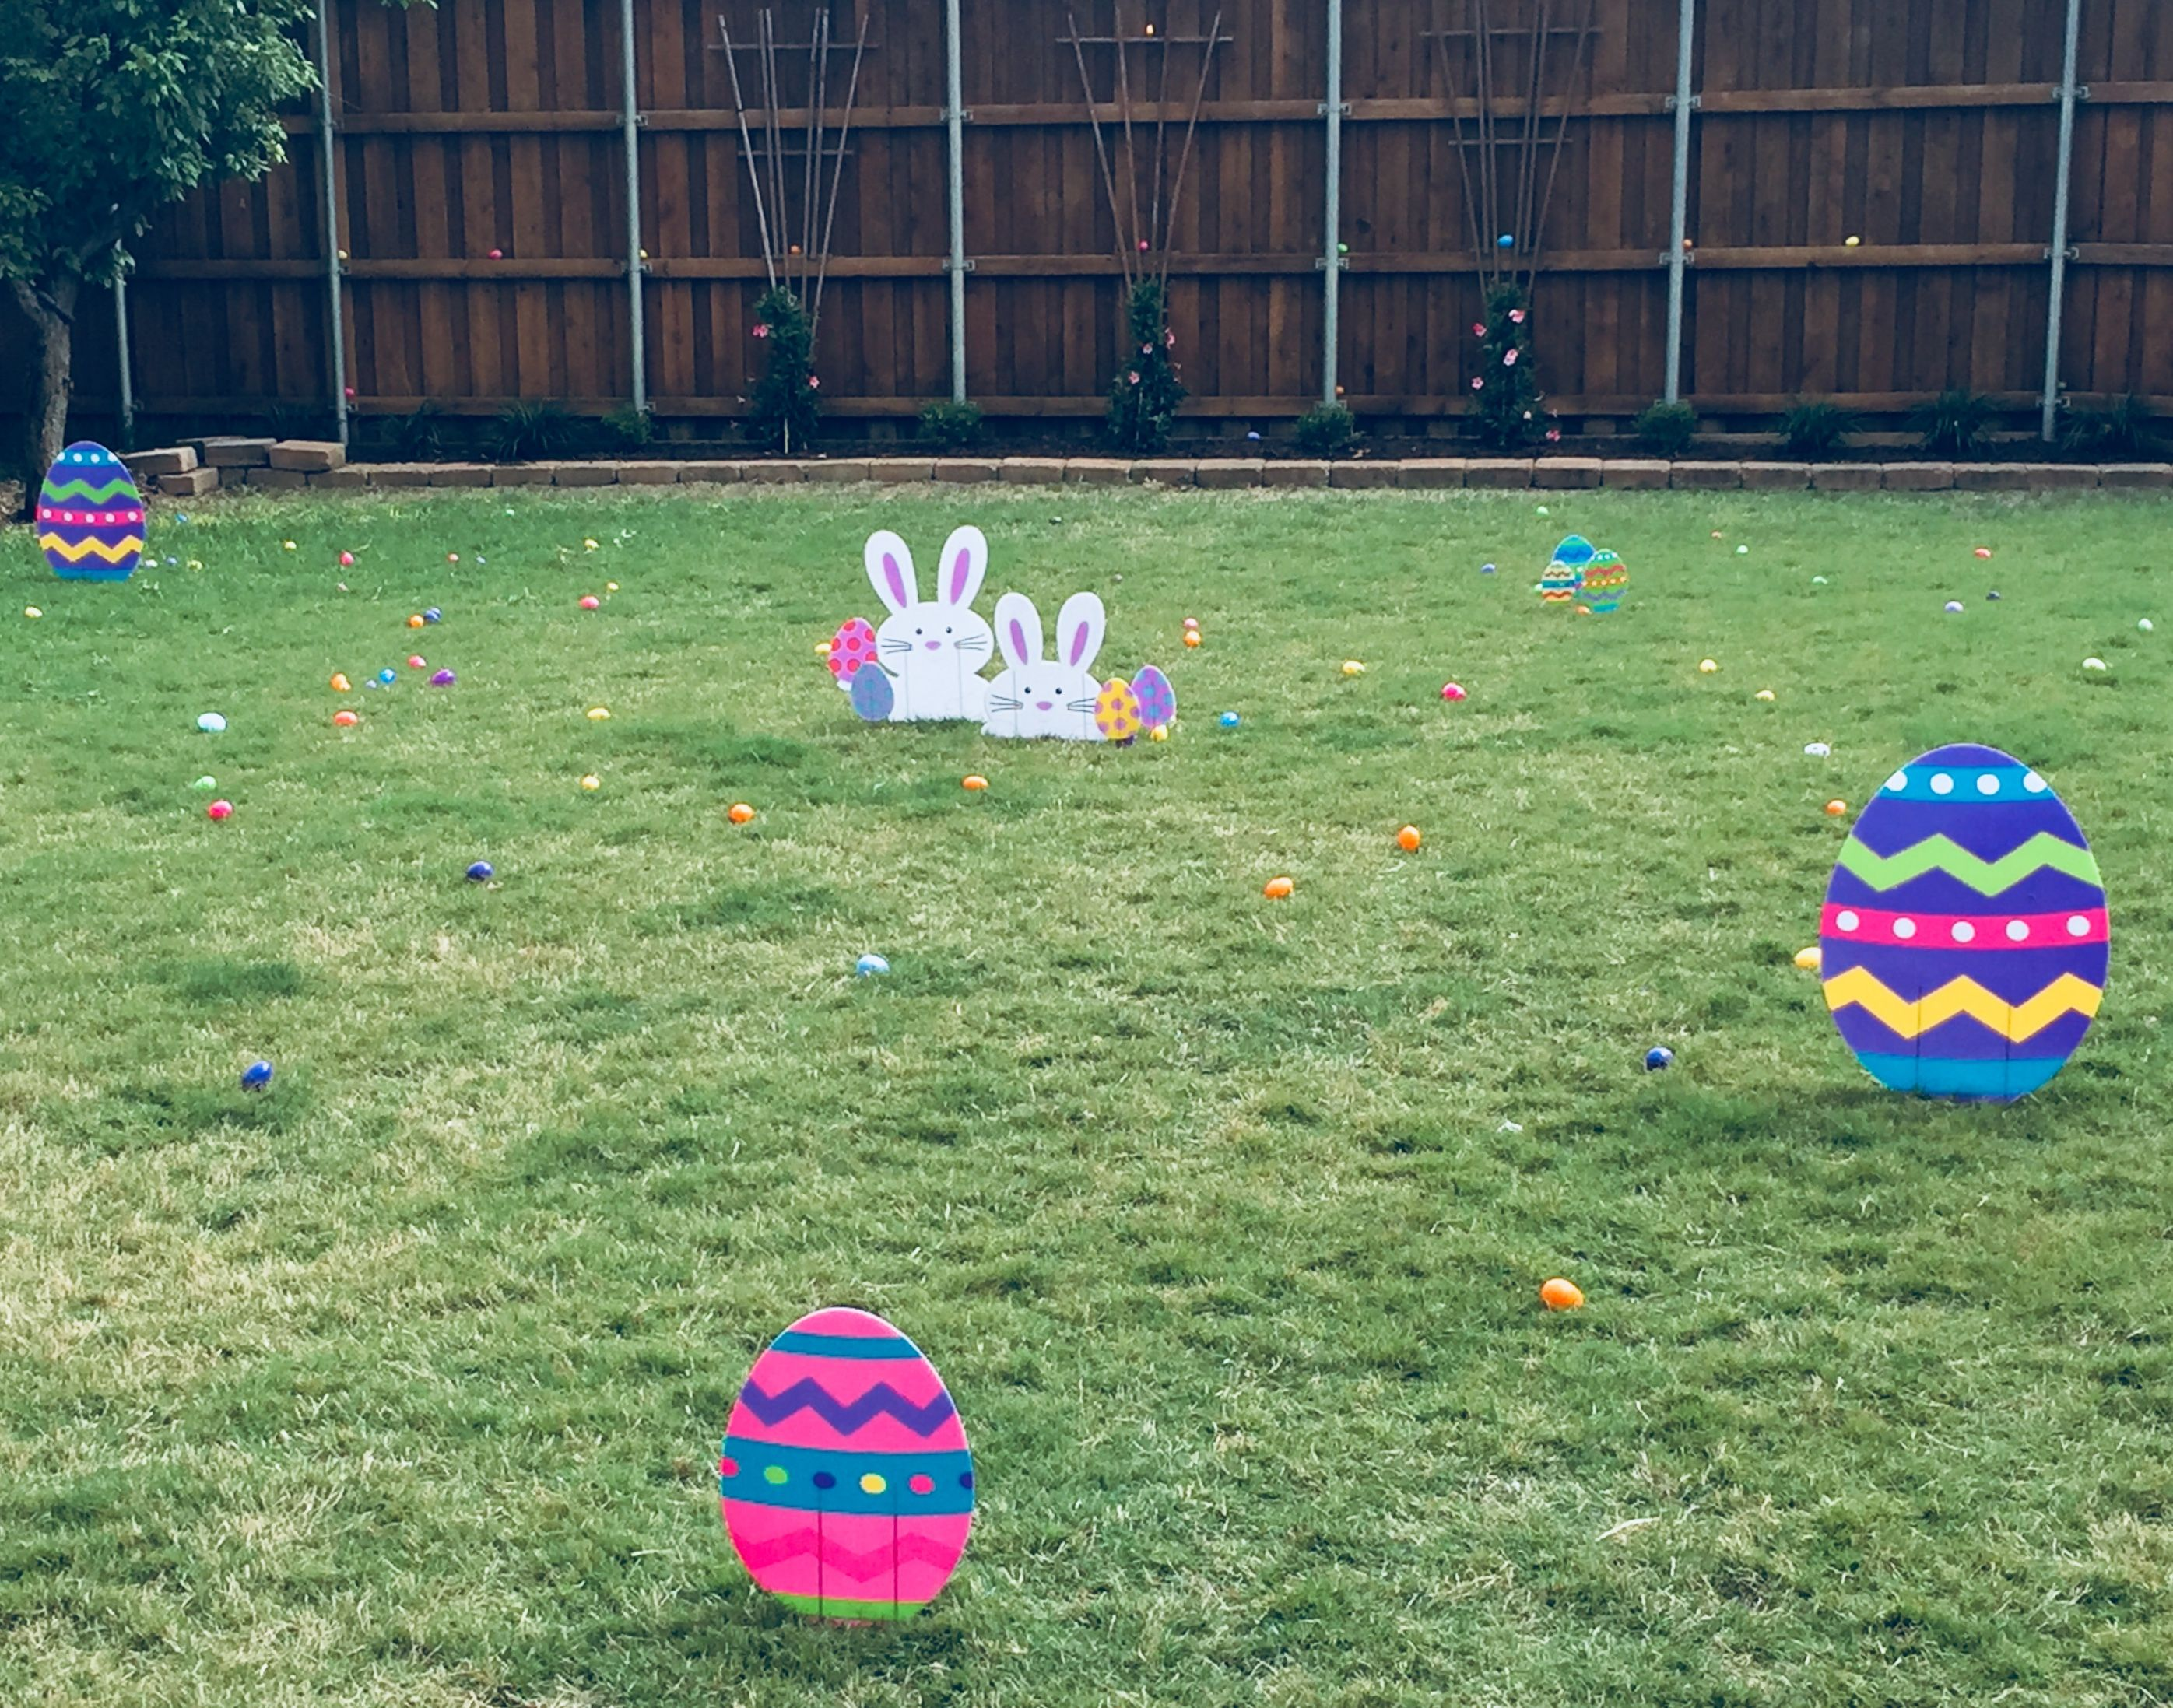 Cute yard sign decorations for easter egg hunts or the front yard cute yard sign decorations for easter egg hunts or the front yard ideas for easter negle Gallery